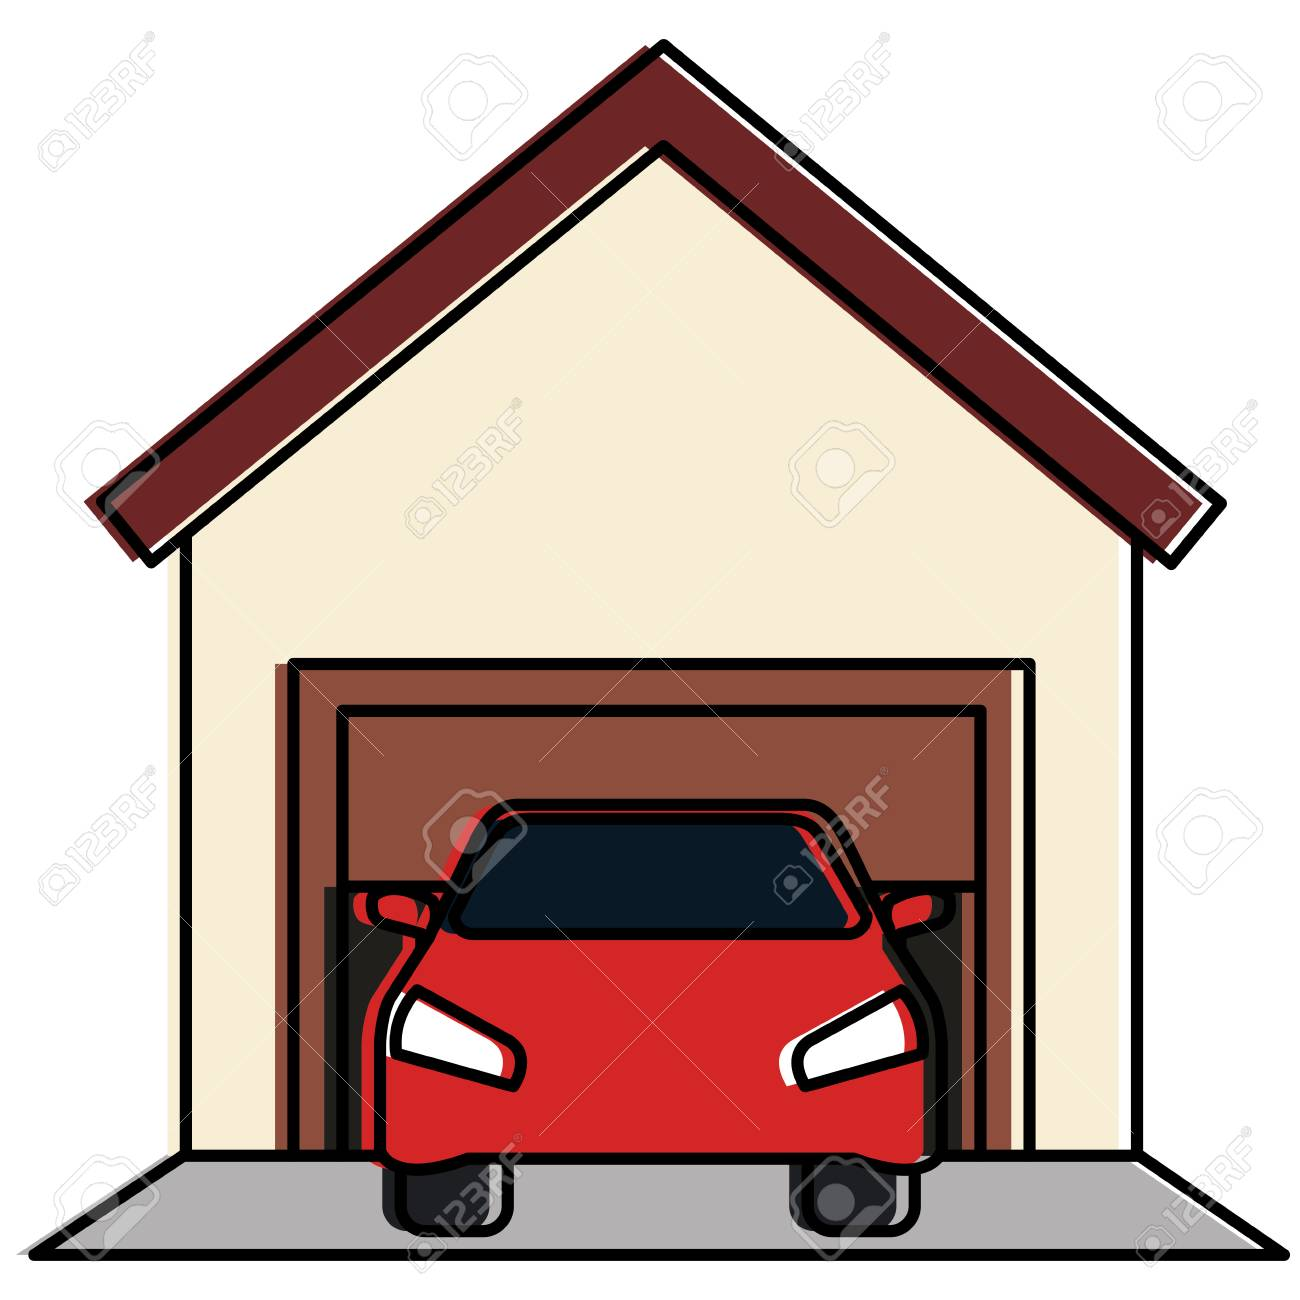 Garage building with car vector illustration design.